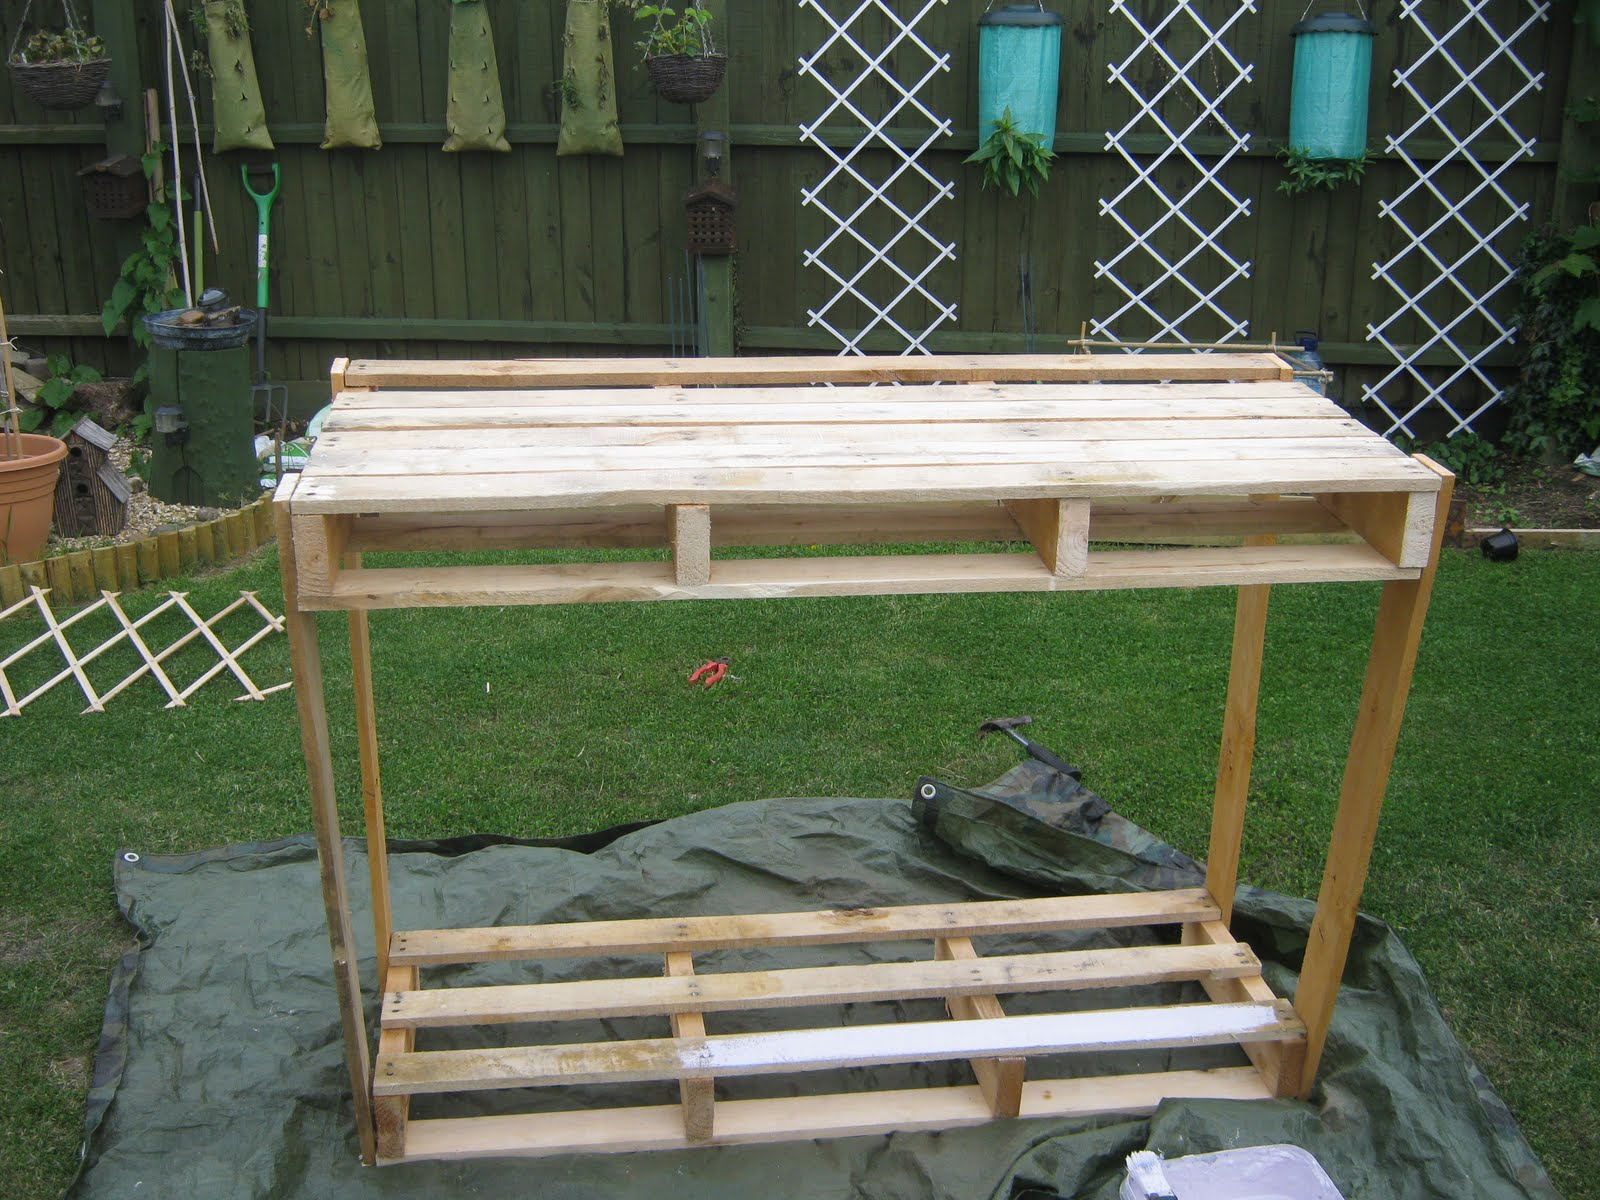 Mishaps In The Making: Wooden pallet potting bench